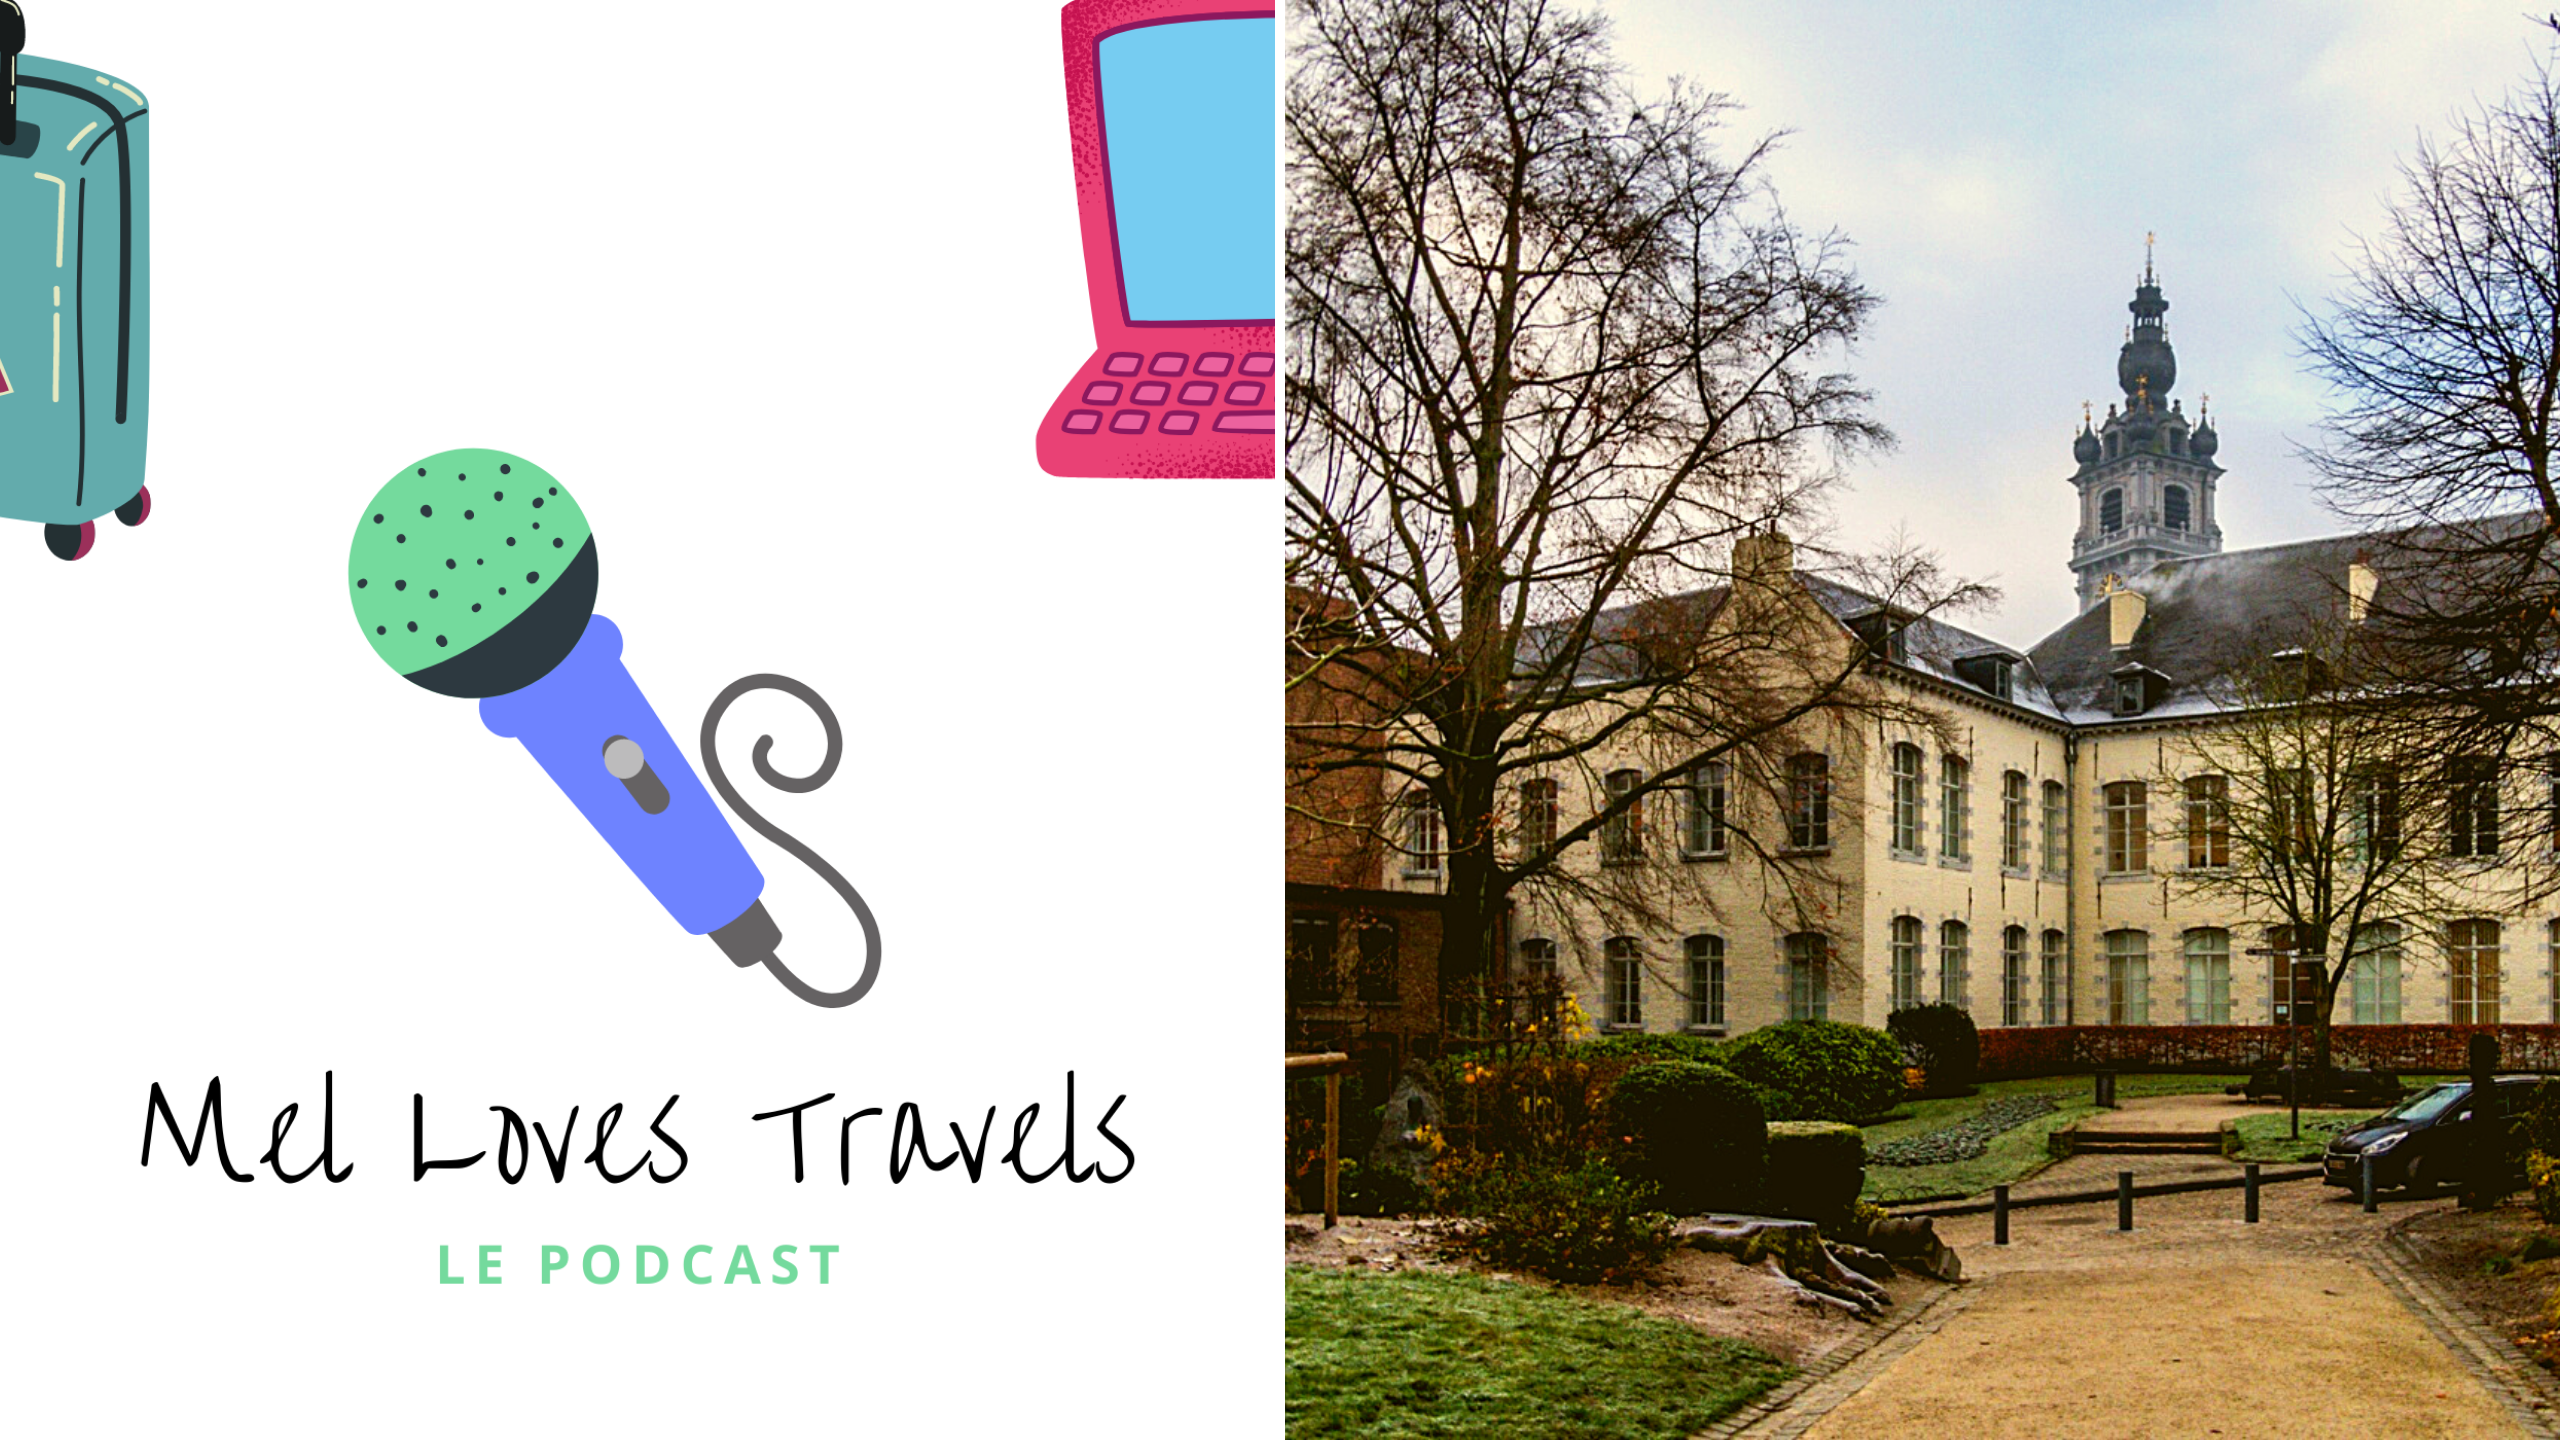 Mel Loves Travels, le podcast: Episode 1, la ville de Mons